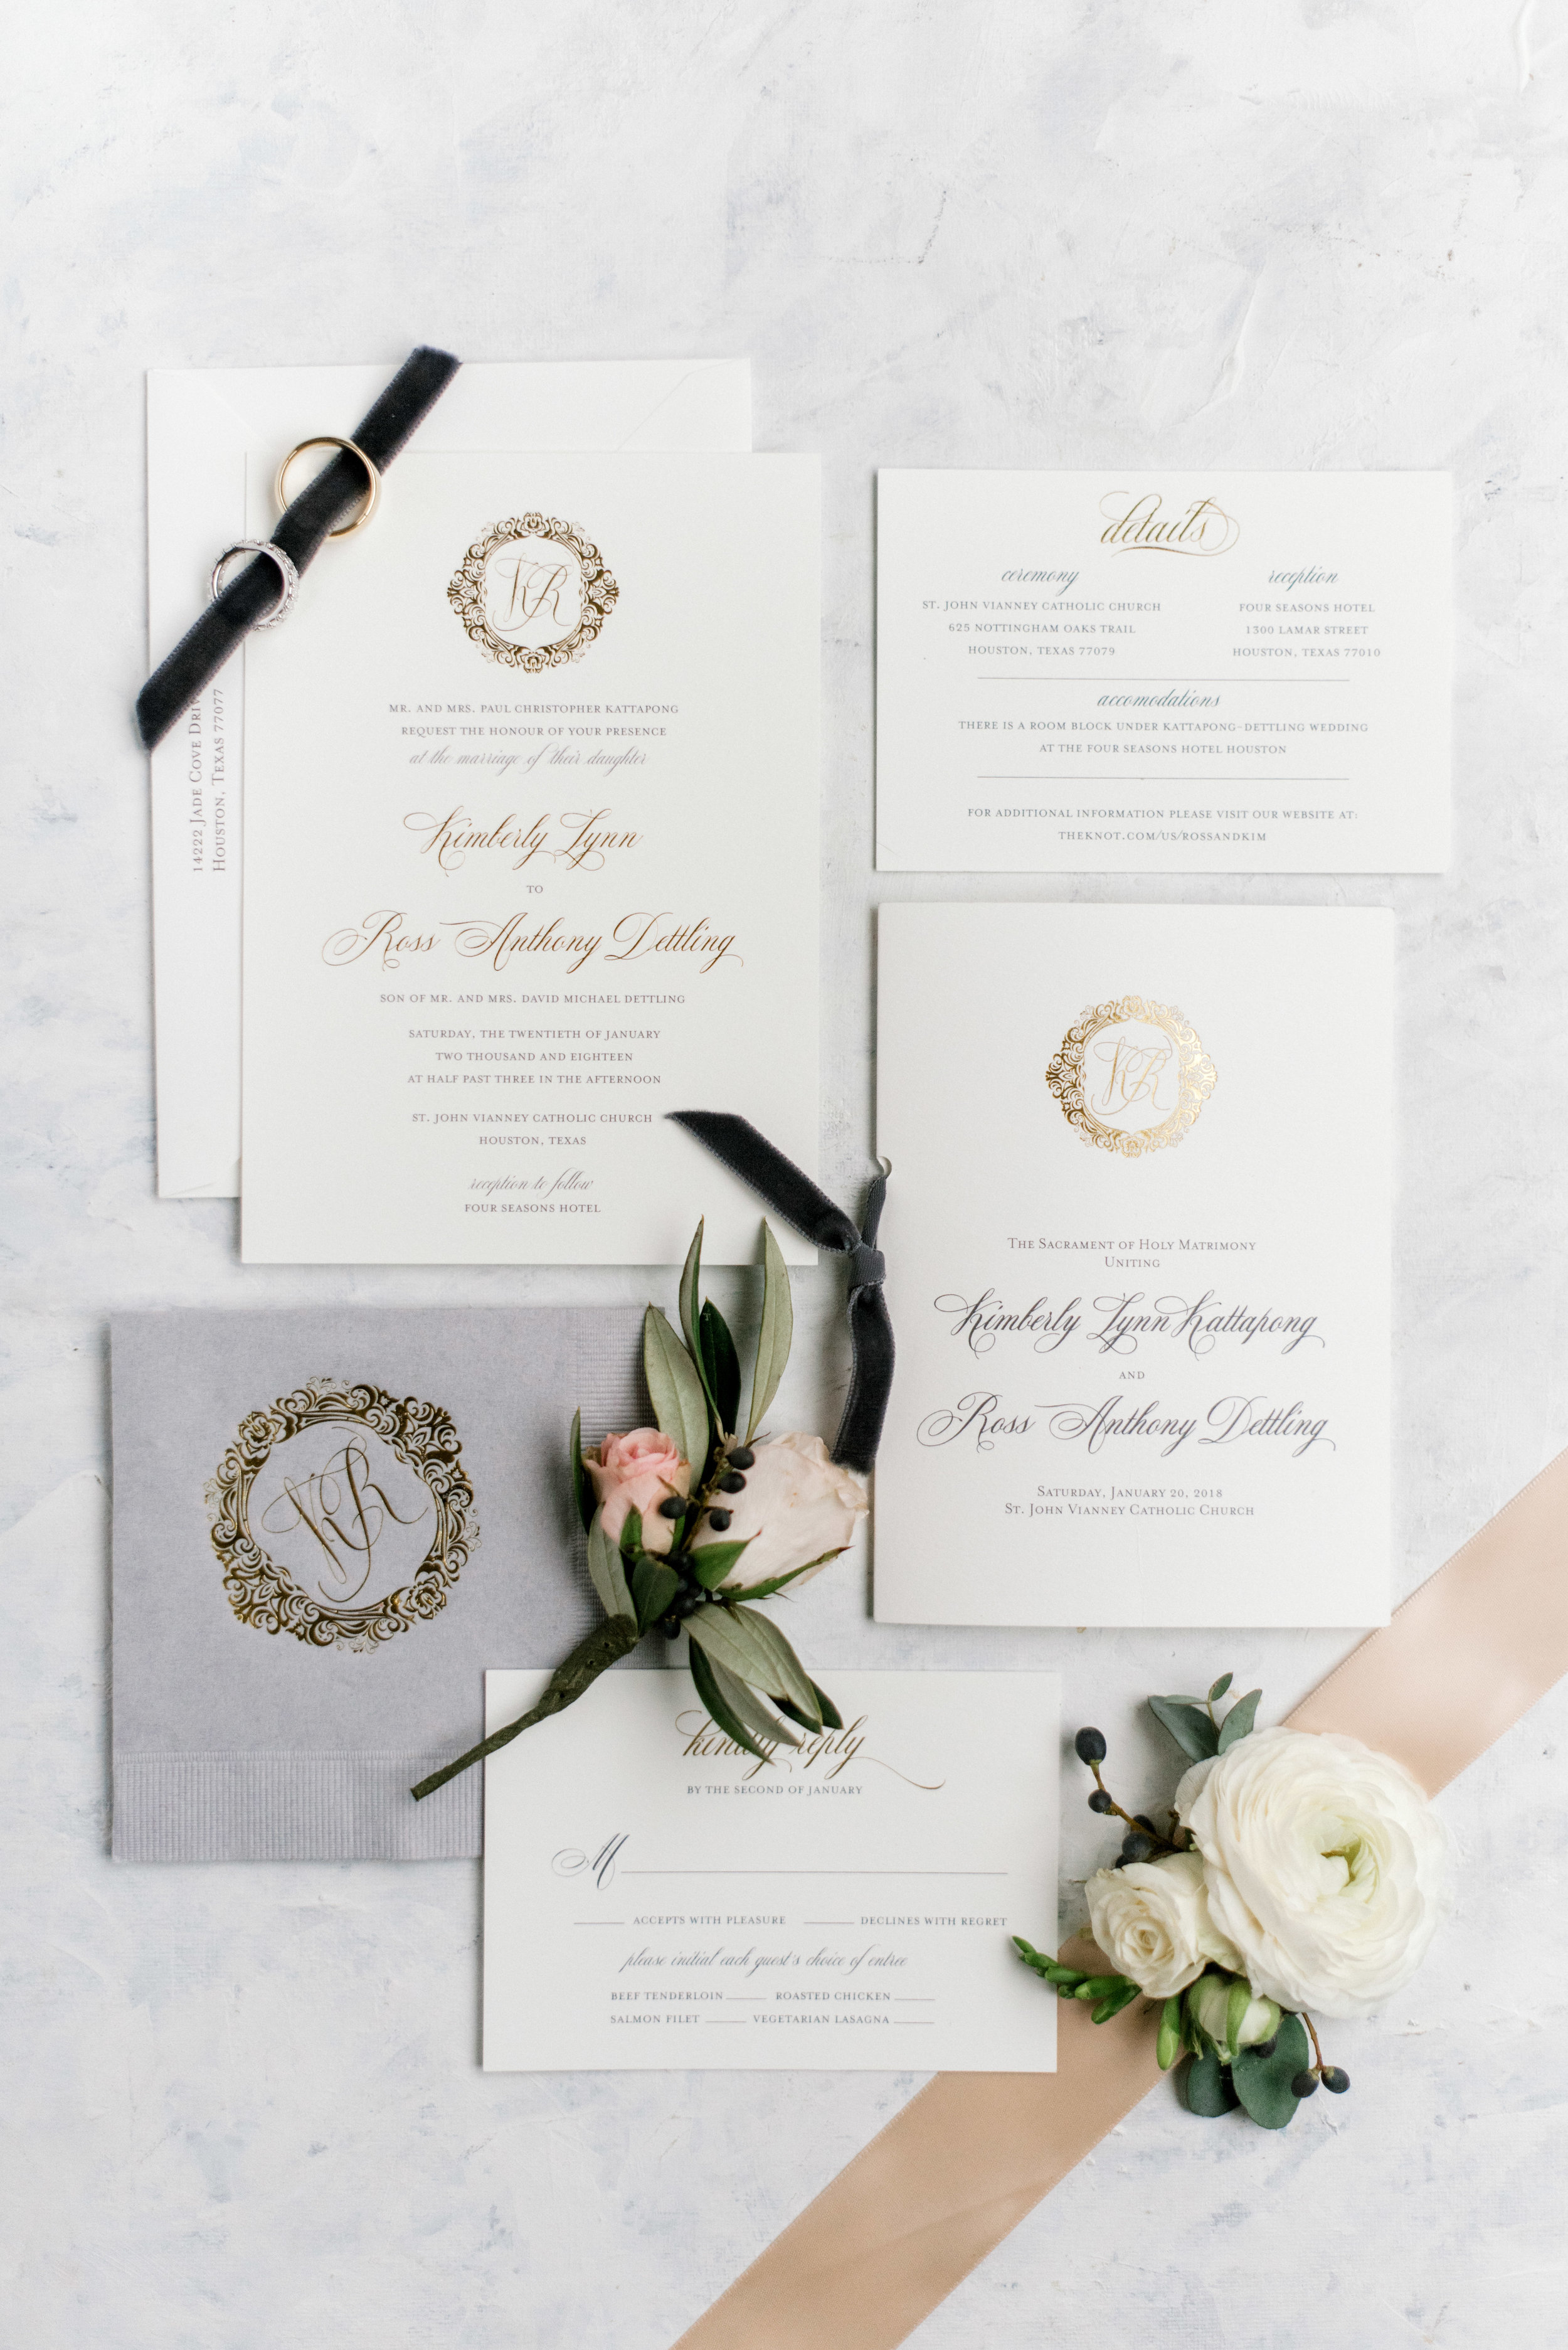 wedding-details-invitation-monogram-paper-gold-foil-photography-dana-fernandez-corsage-floral-greenery-by-maxit-flower-design-houston-texas